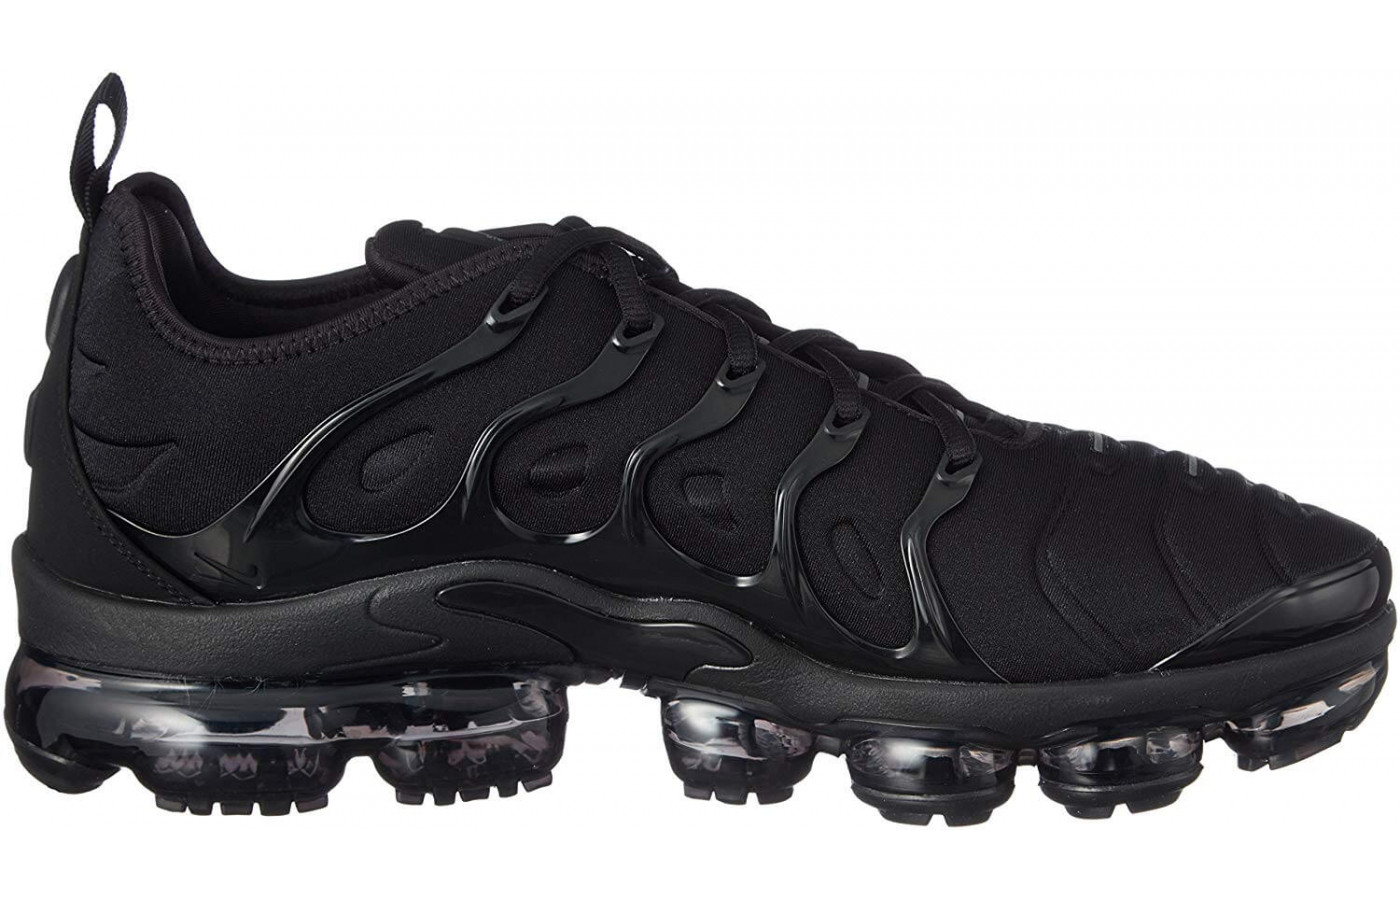 8ce3e23b9d3 Nike Air VaporMax Plus Review - Buy or Not in Apr 2019